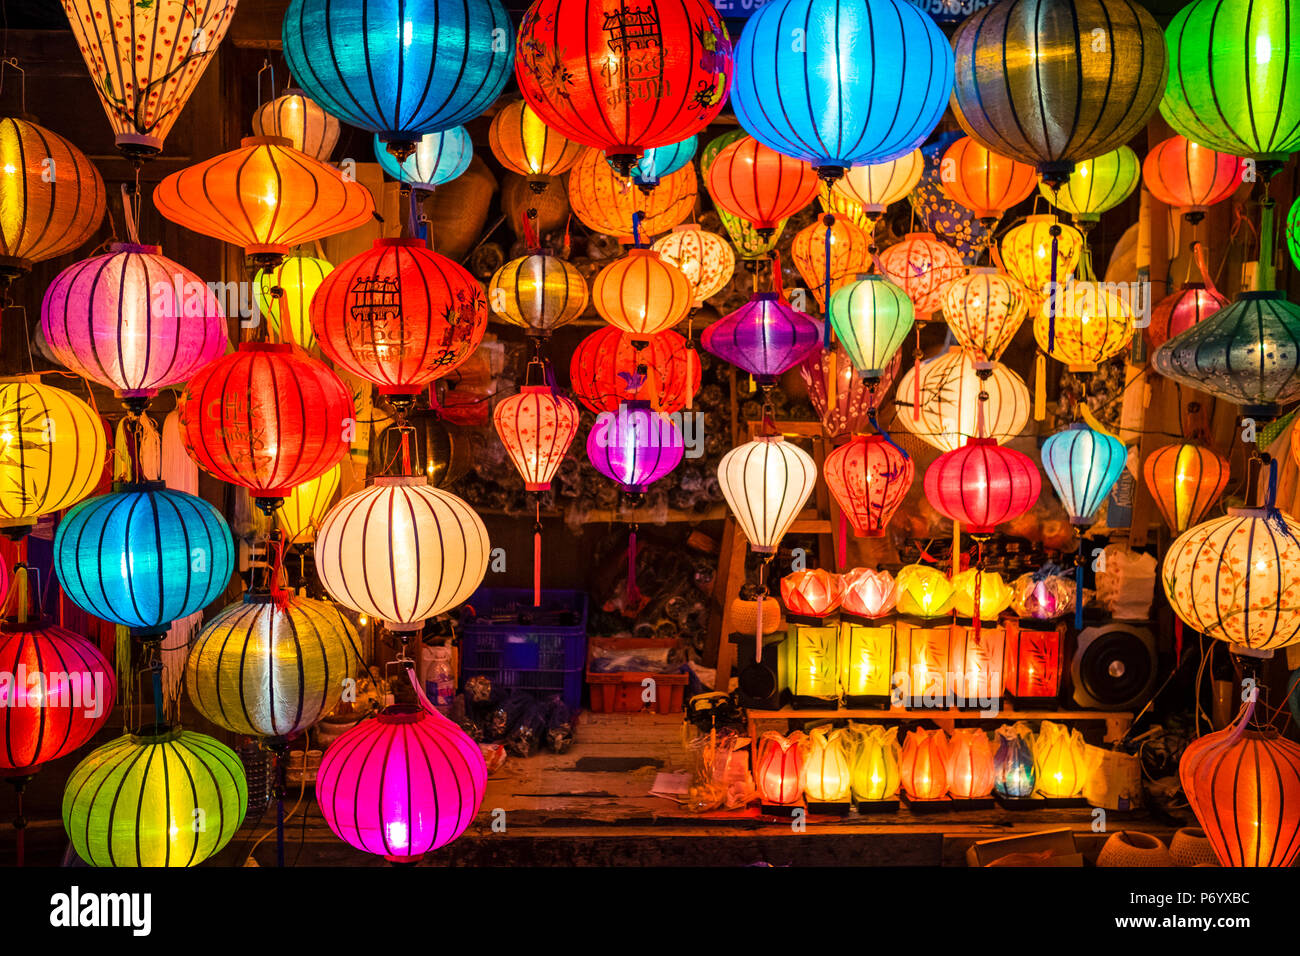 Hand-made silk lanterns for sale on the street in Hoi An, Quang Nam Province, Vietnam - Stock Image